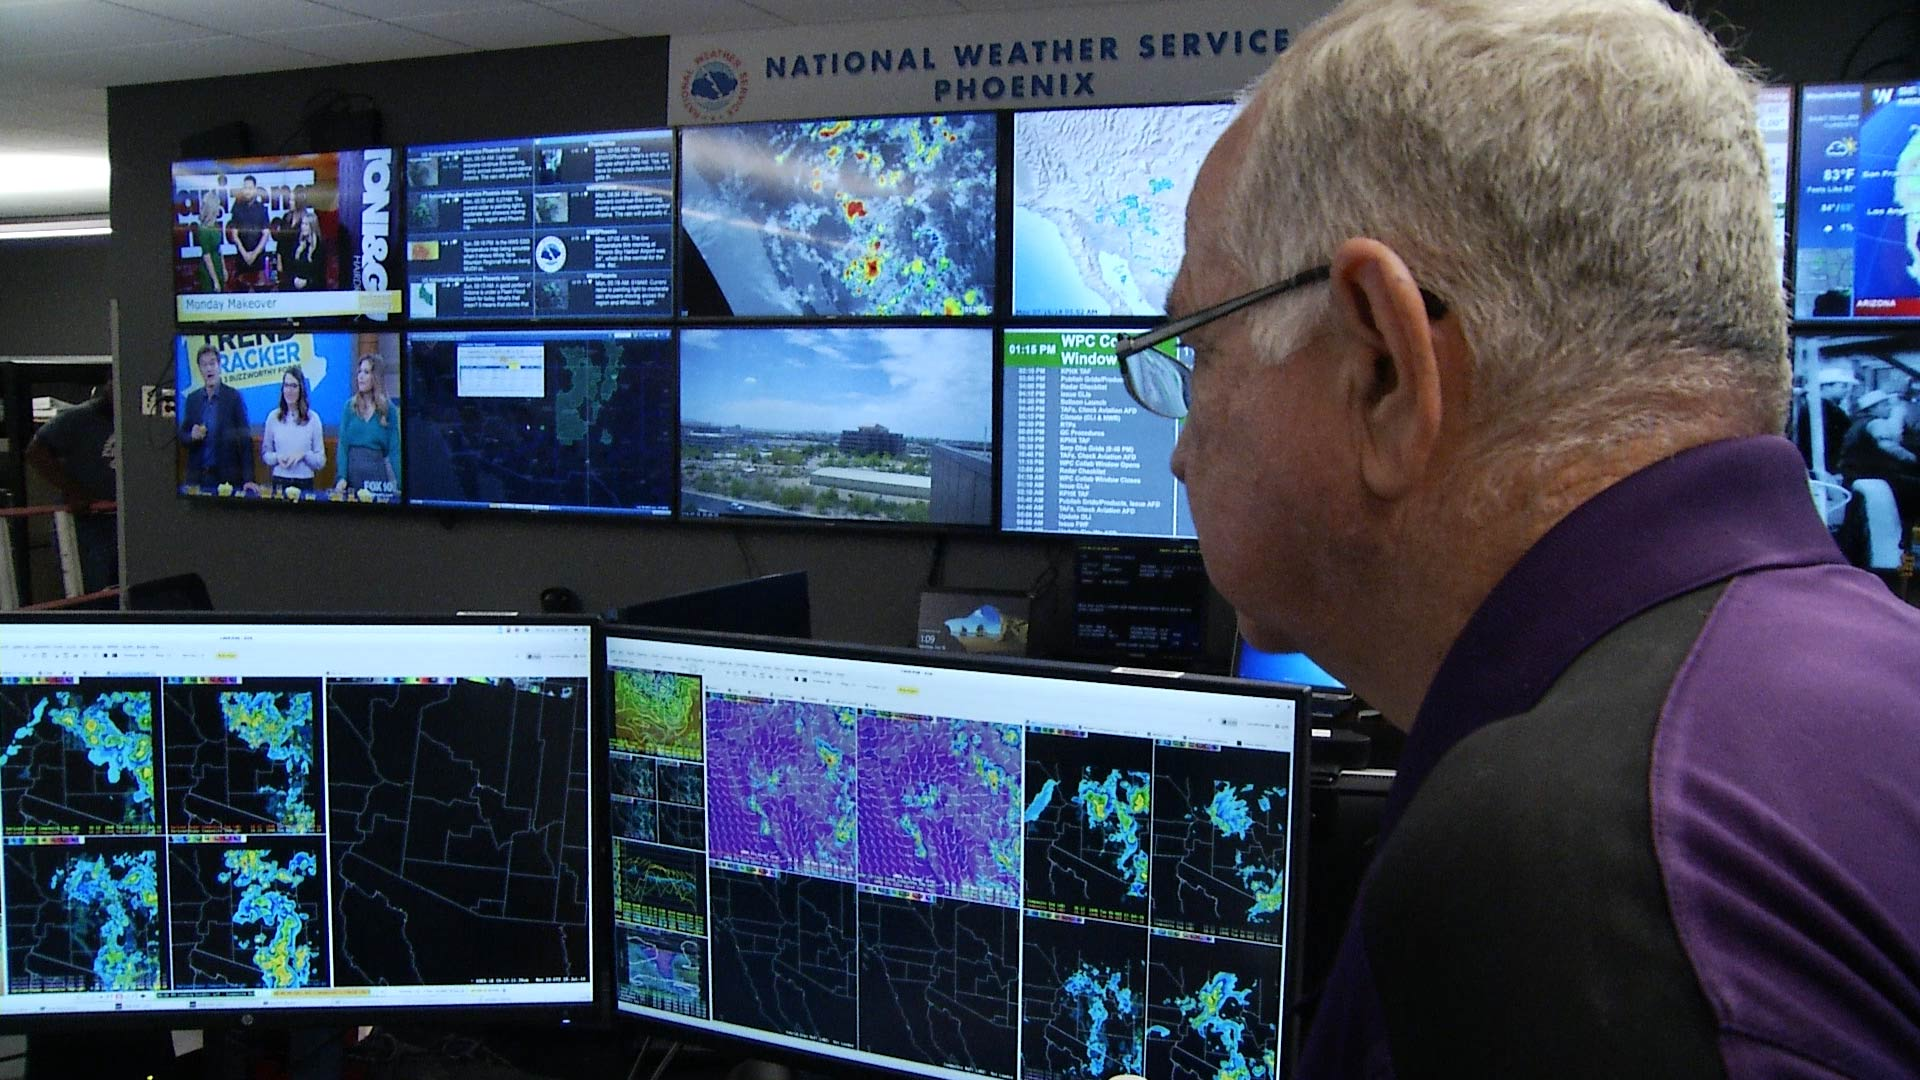 Meteorologist Ken Waters examines weather maps and radars at the National Weather Service's headquarters in Phoenix.